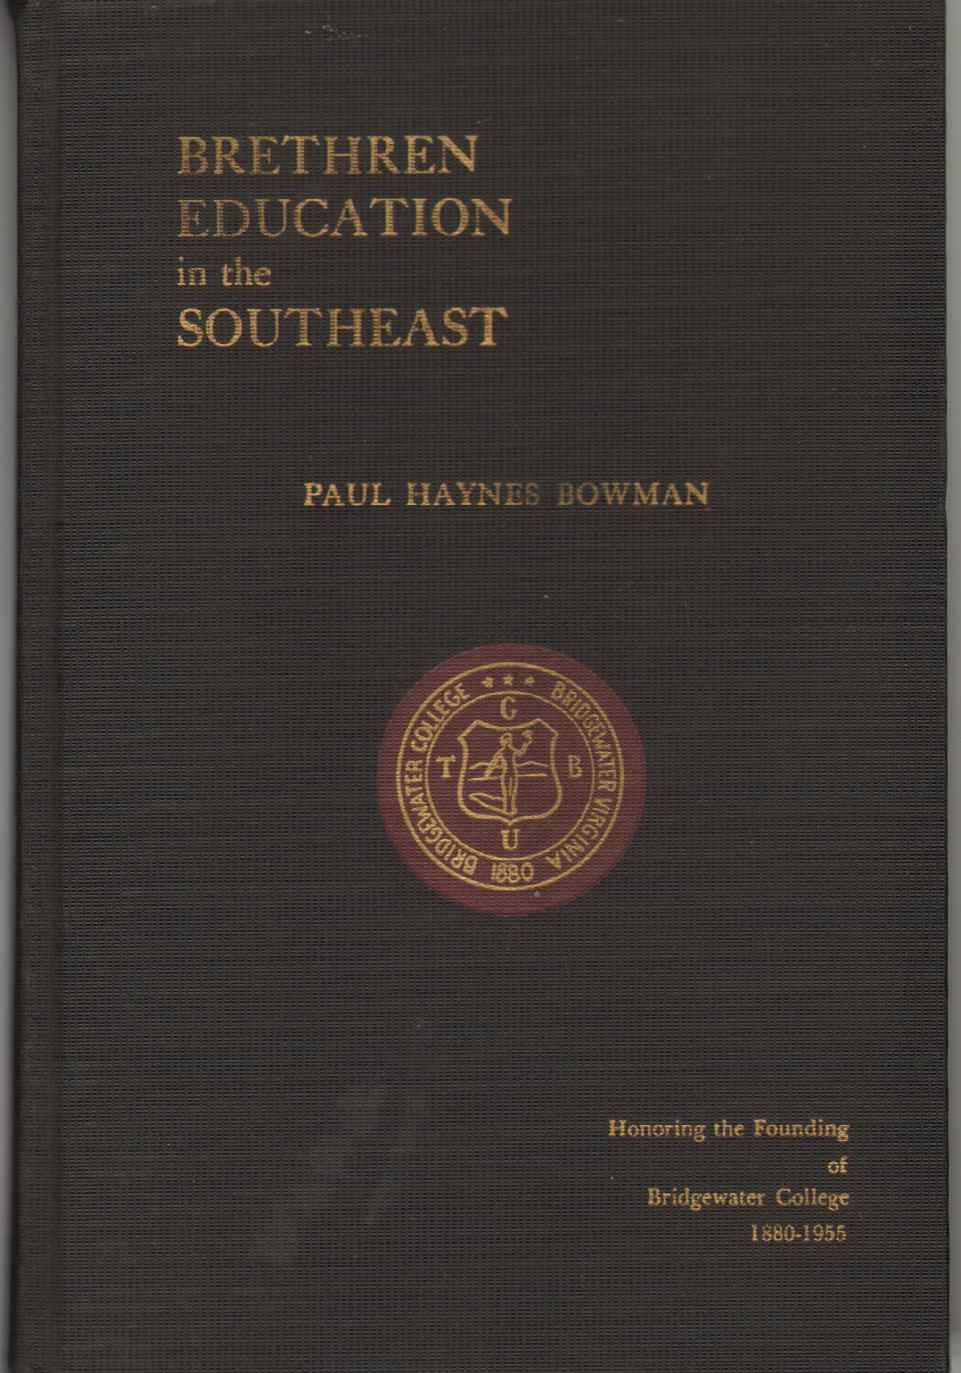 Image for BRETHREN EDUCATION IN THE SOUTHEAST An Account of the Educational Endeavors Among the Brethren People in the Southeastern Region 1857-1955